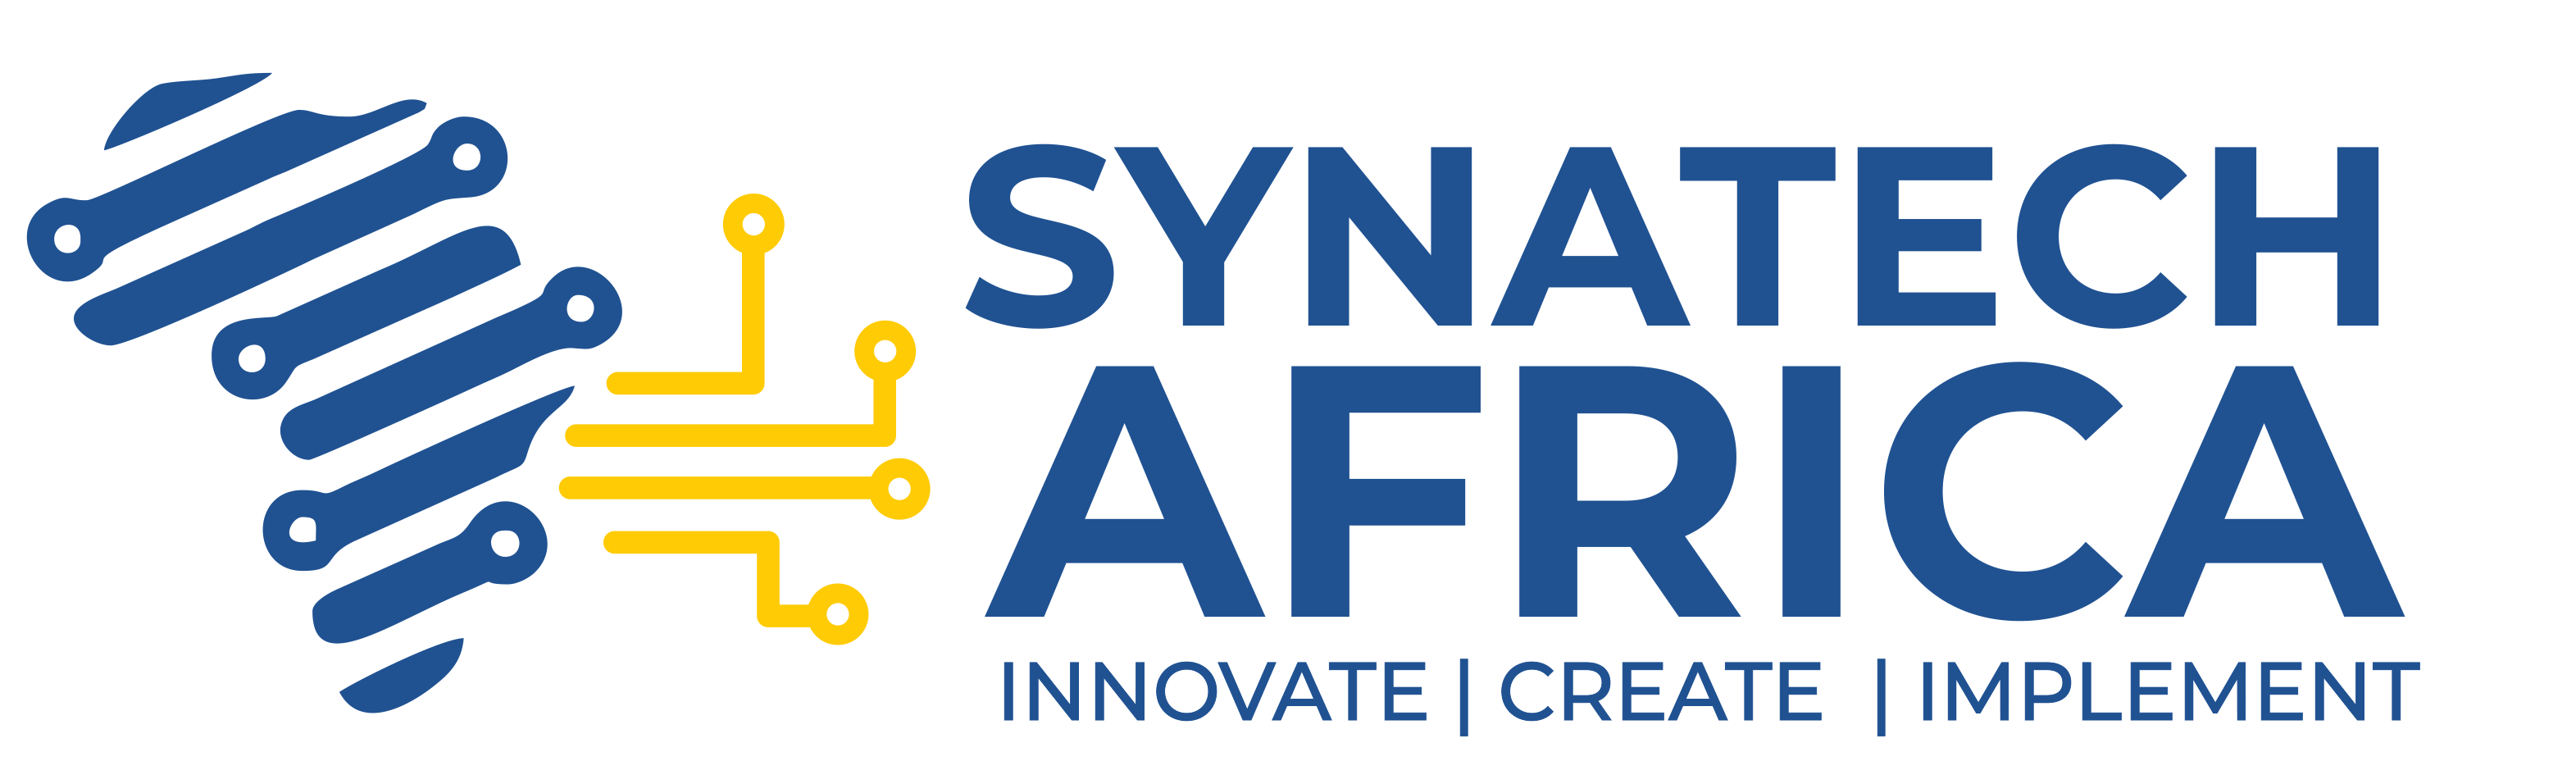 Synatech Africa